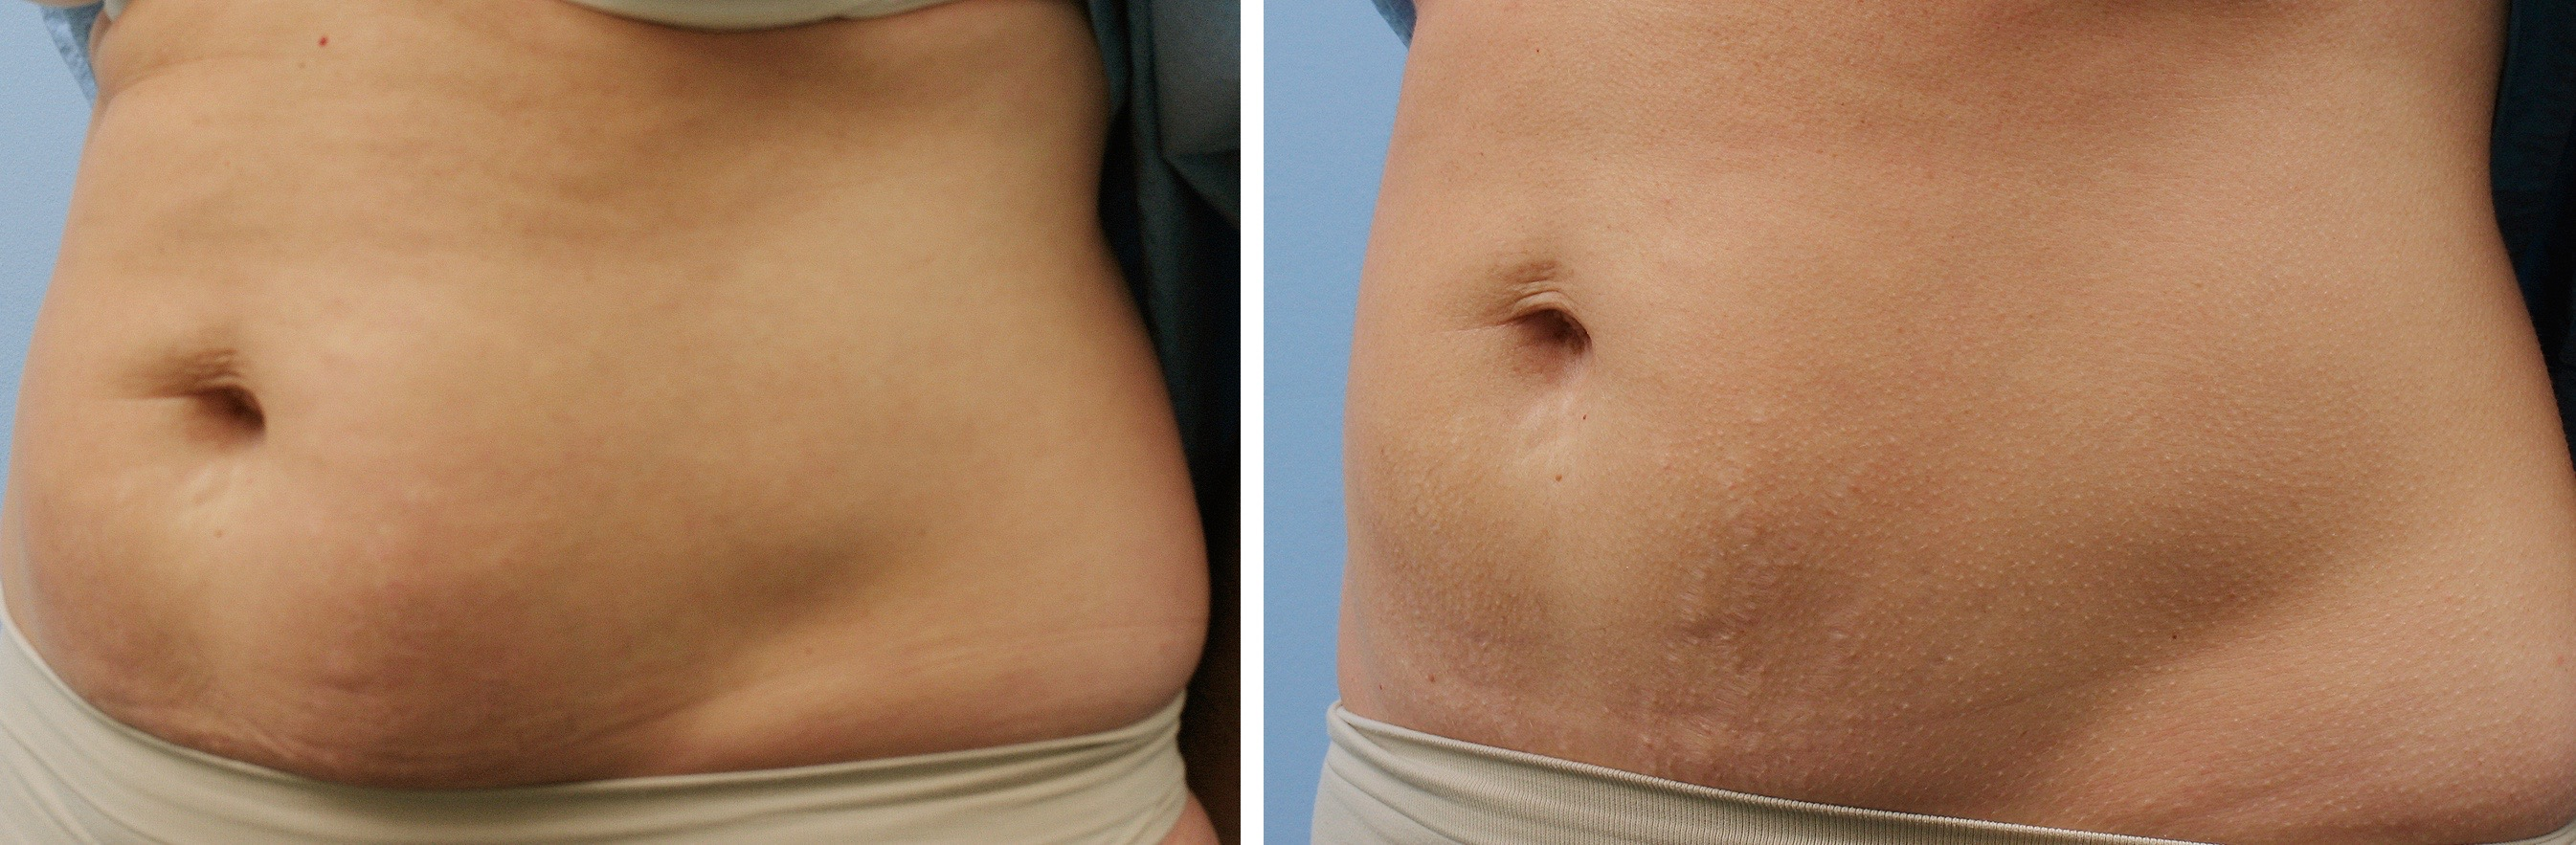 Thermage for Loose Skin and Body Shaping and Exilis Non ...